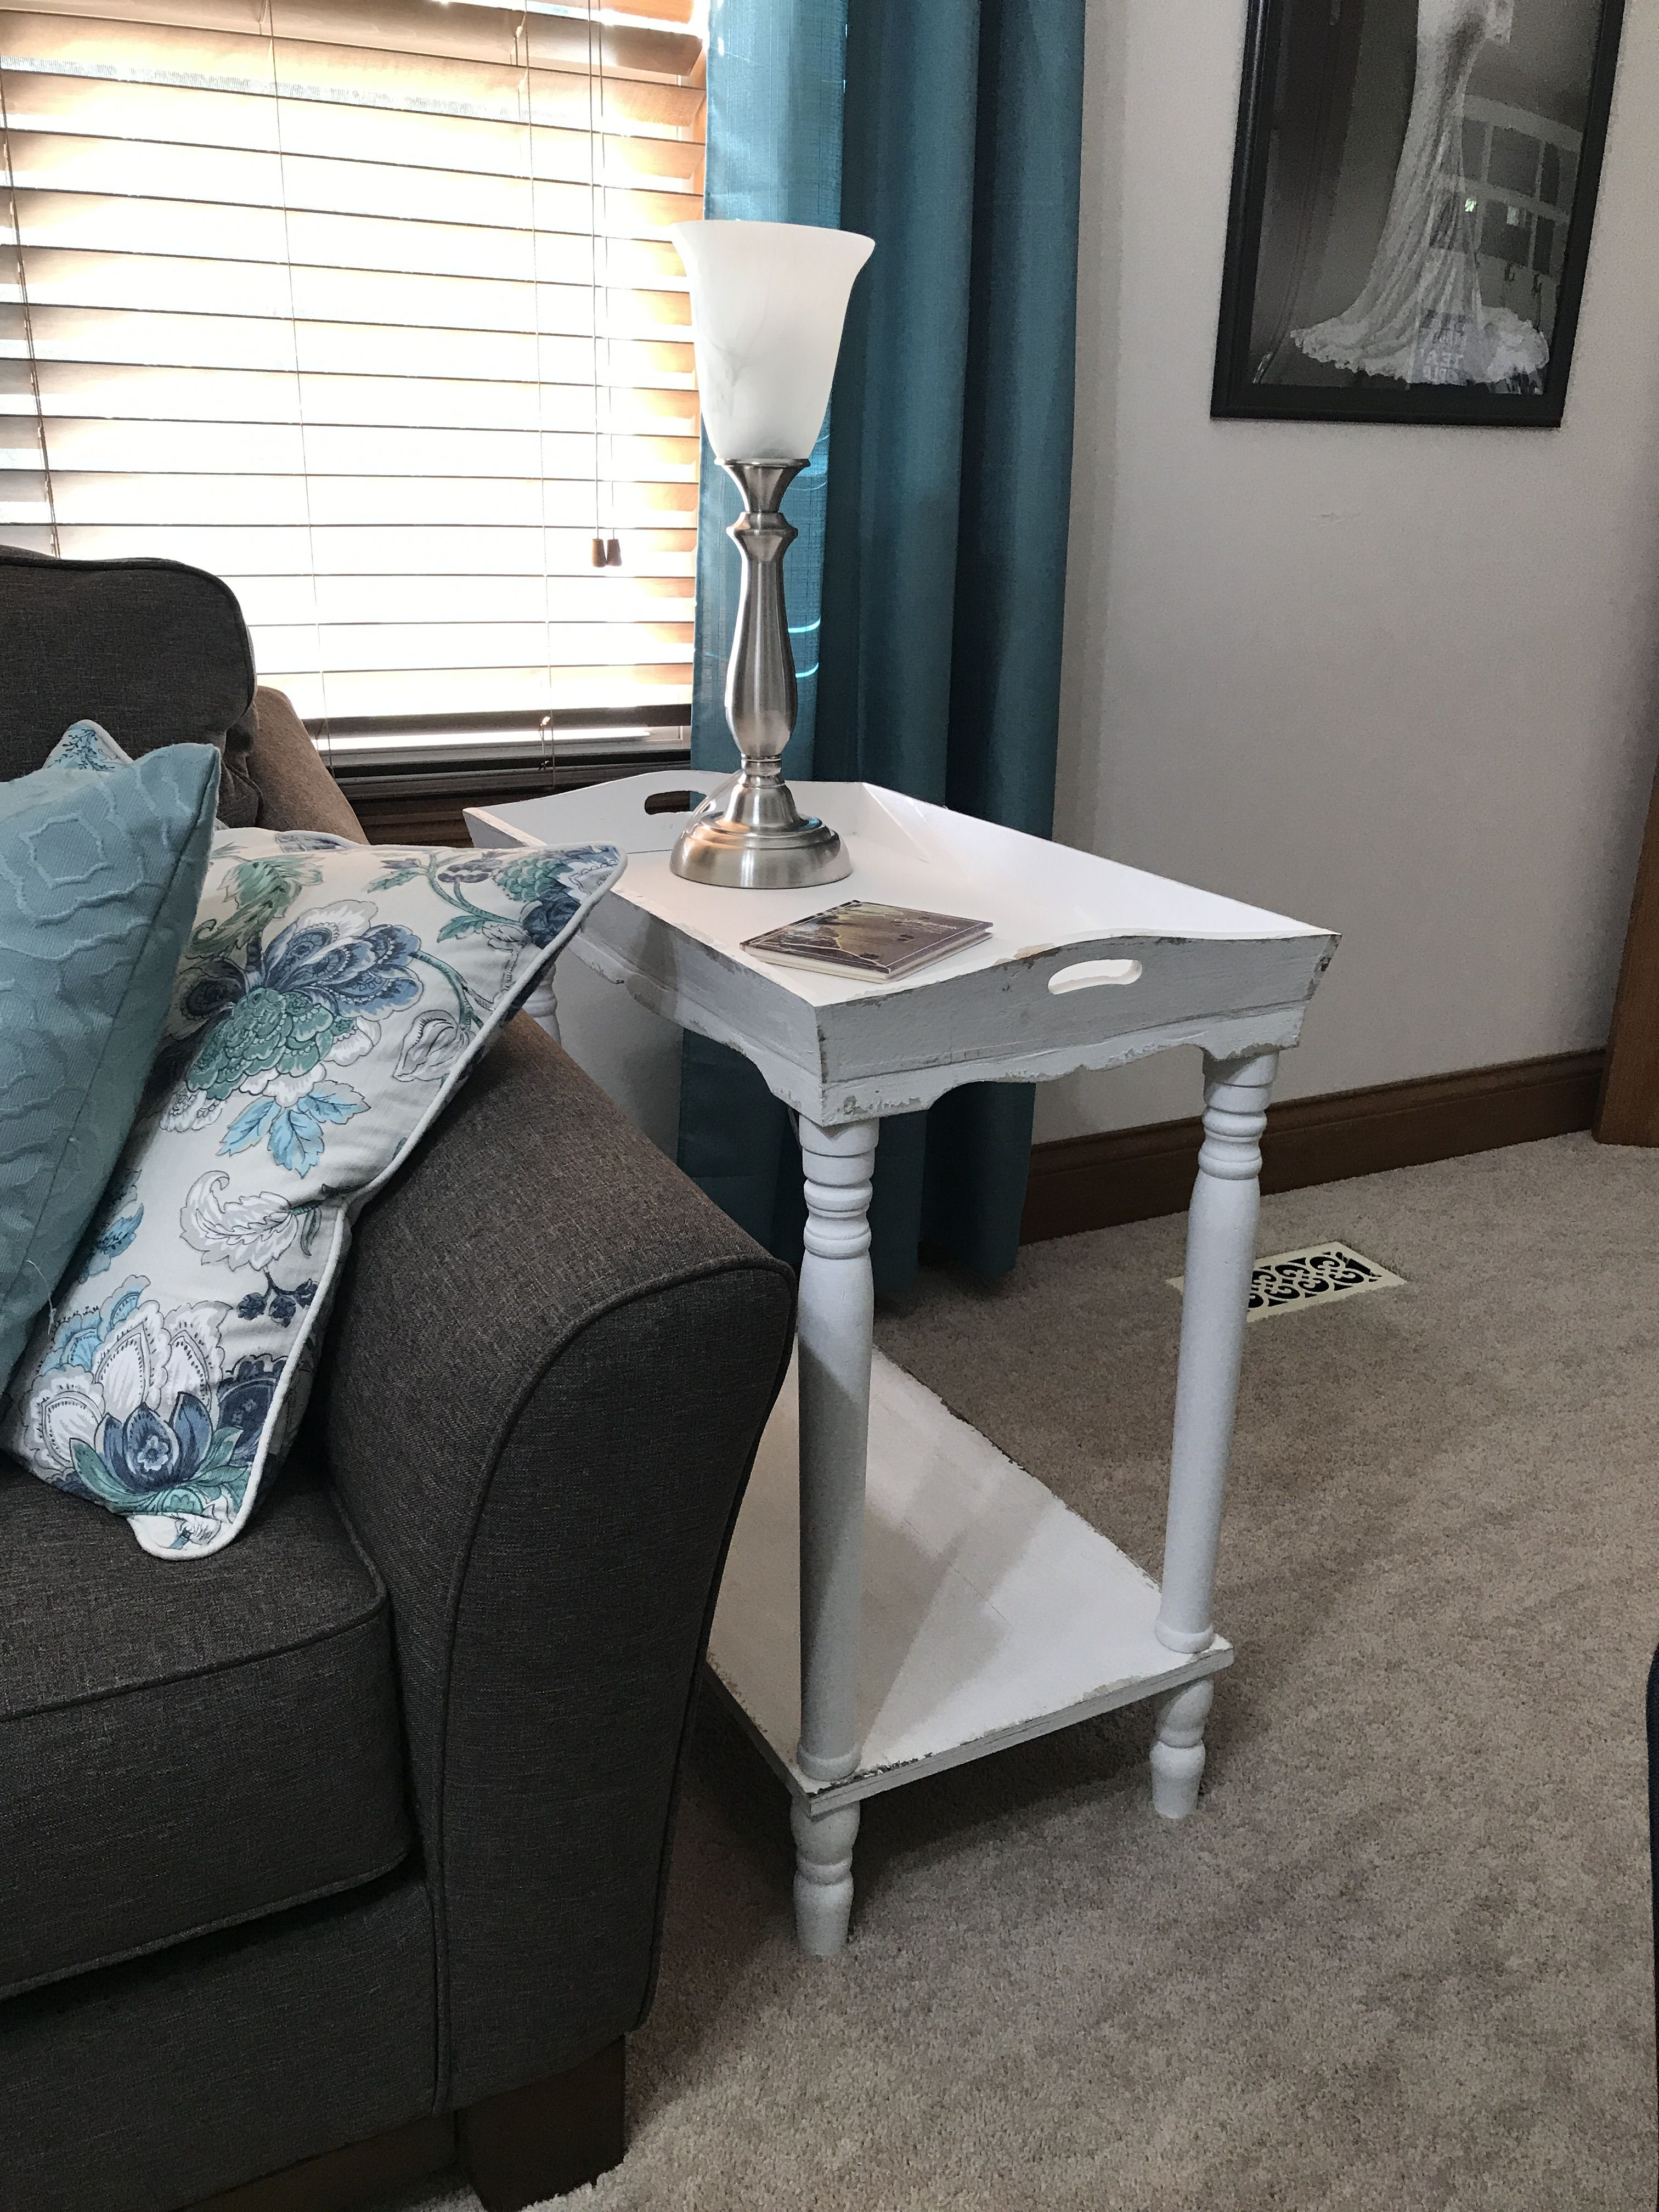 Side Tables On Clearance From Hobby Lobby Living Room Renovation Room Renovation Home Decor